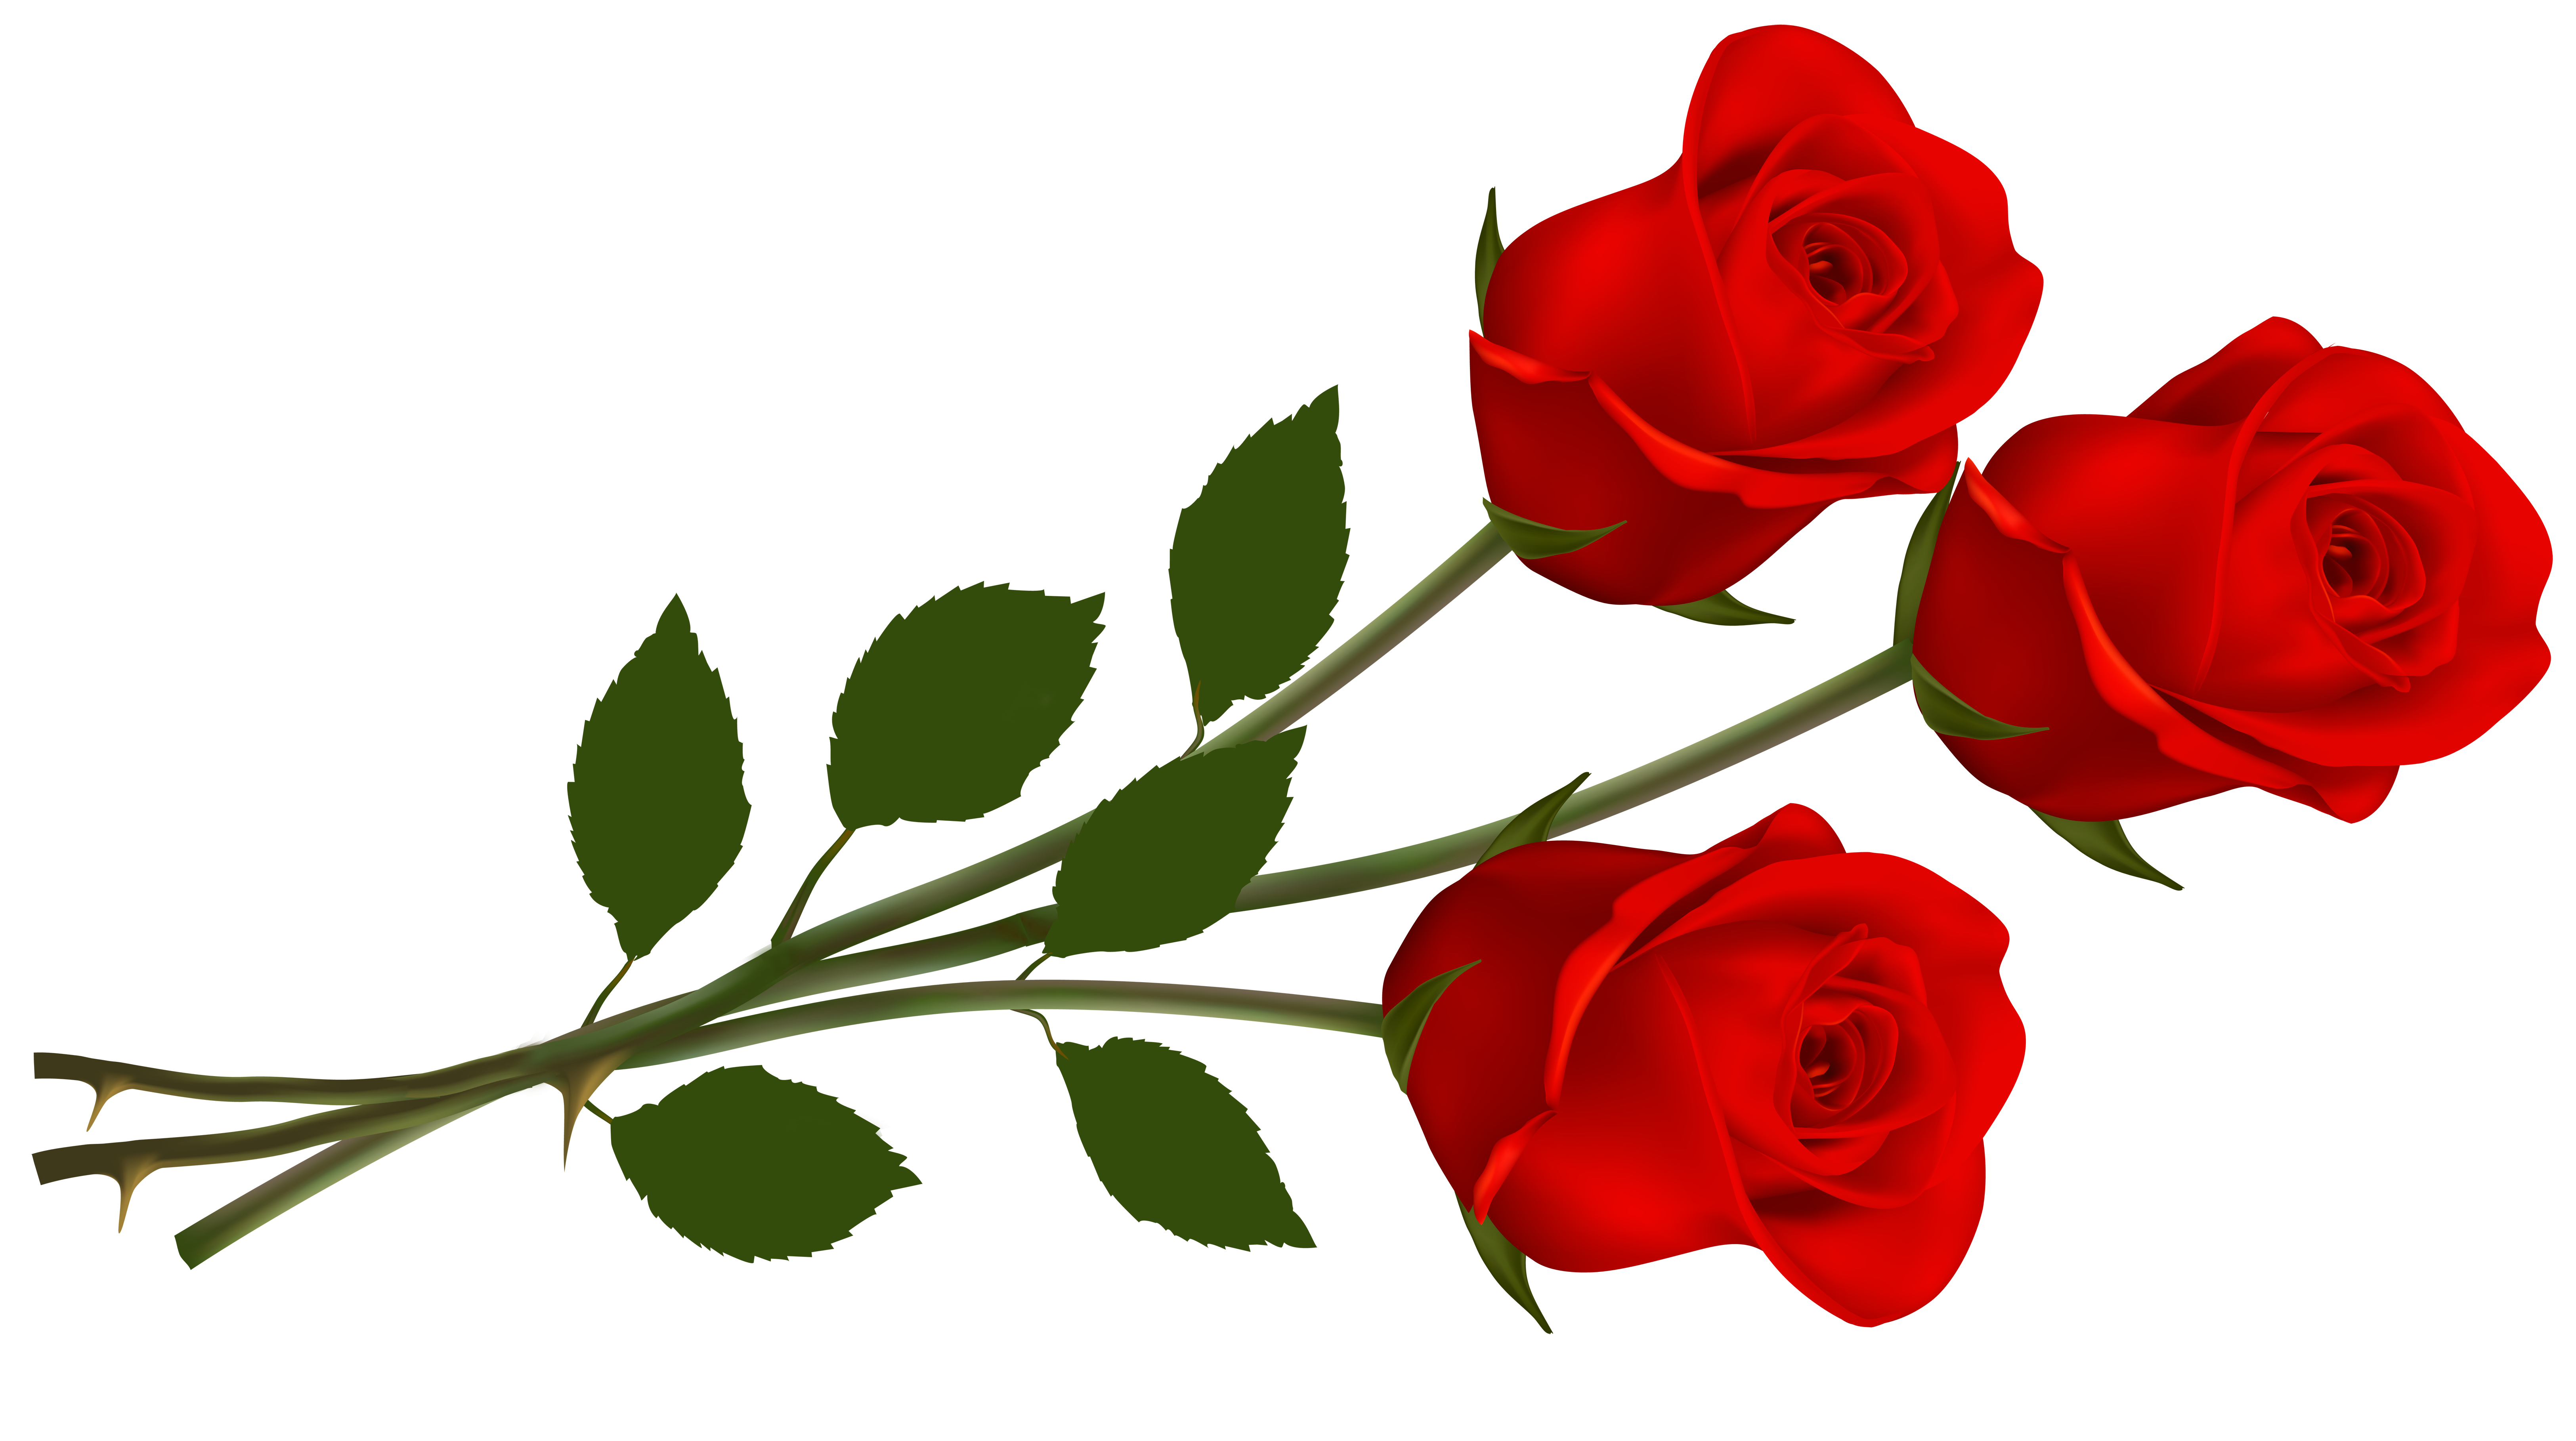 Single red rose clipart - ClipartFest